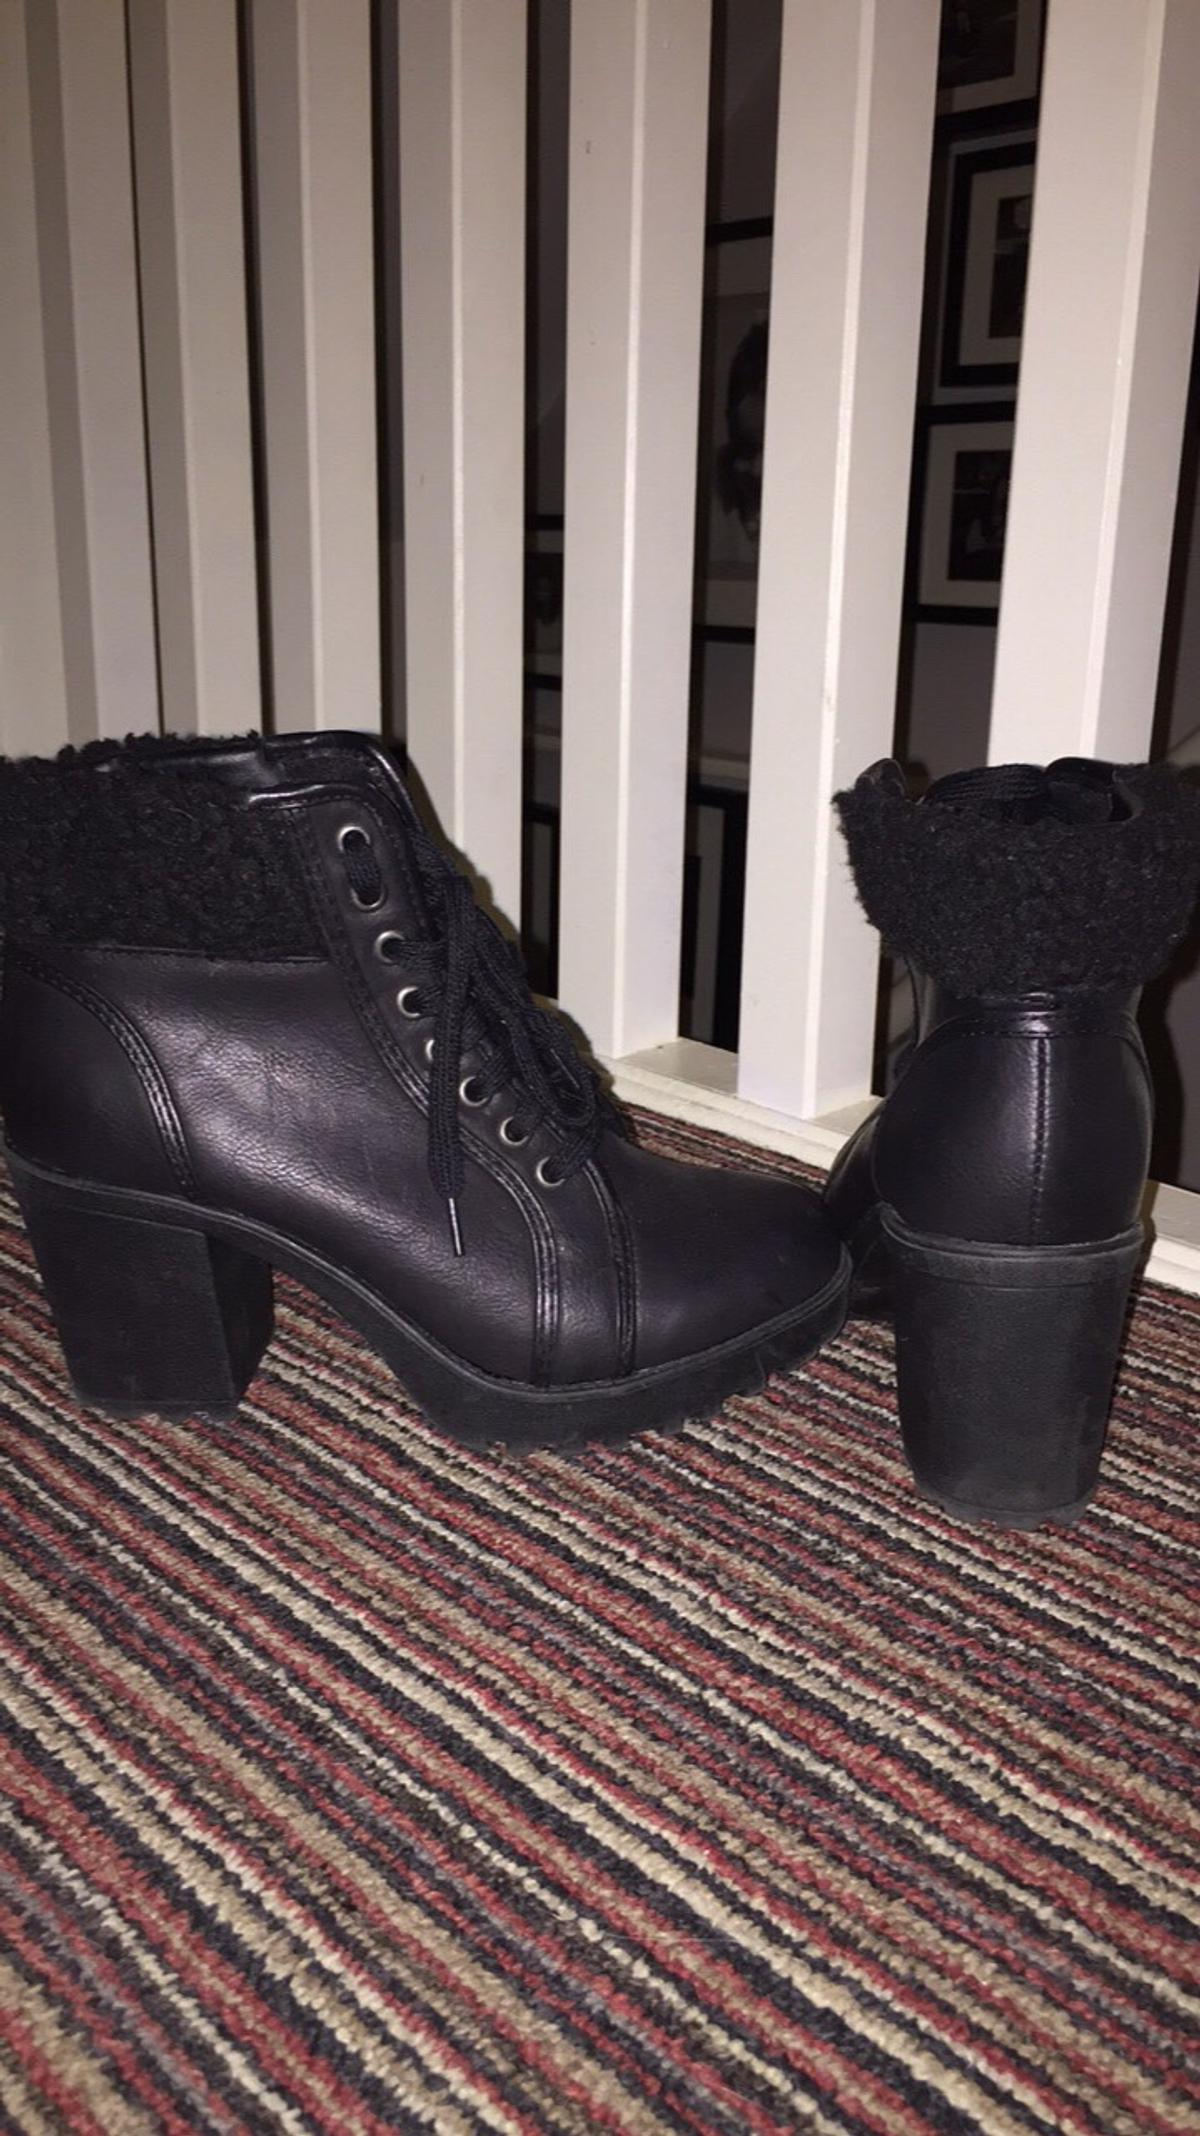 9af5675f468 New Look Combat Boots - Size 4